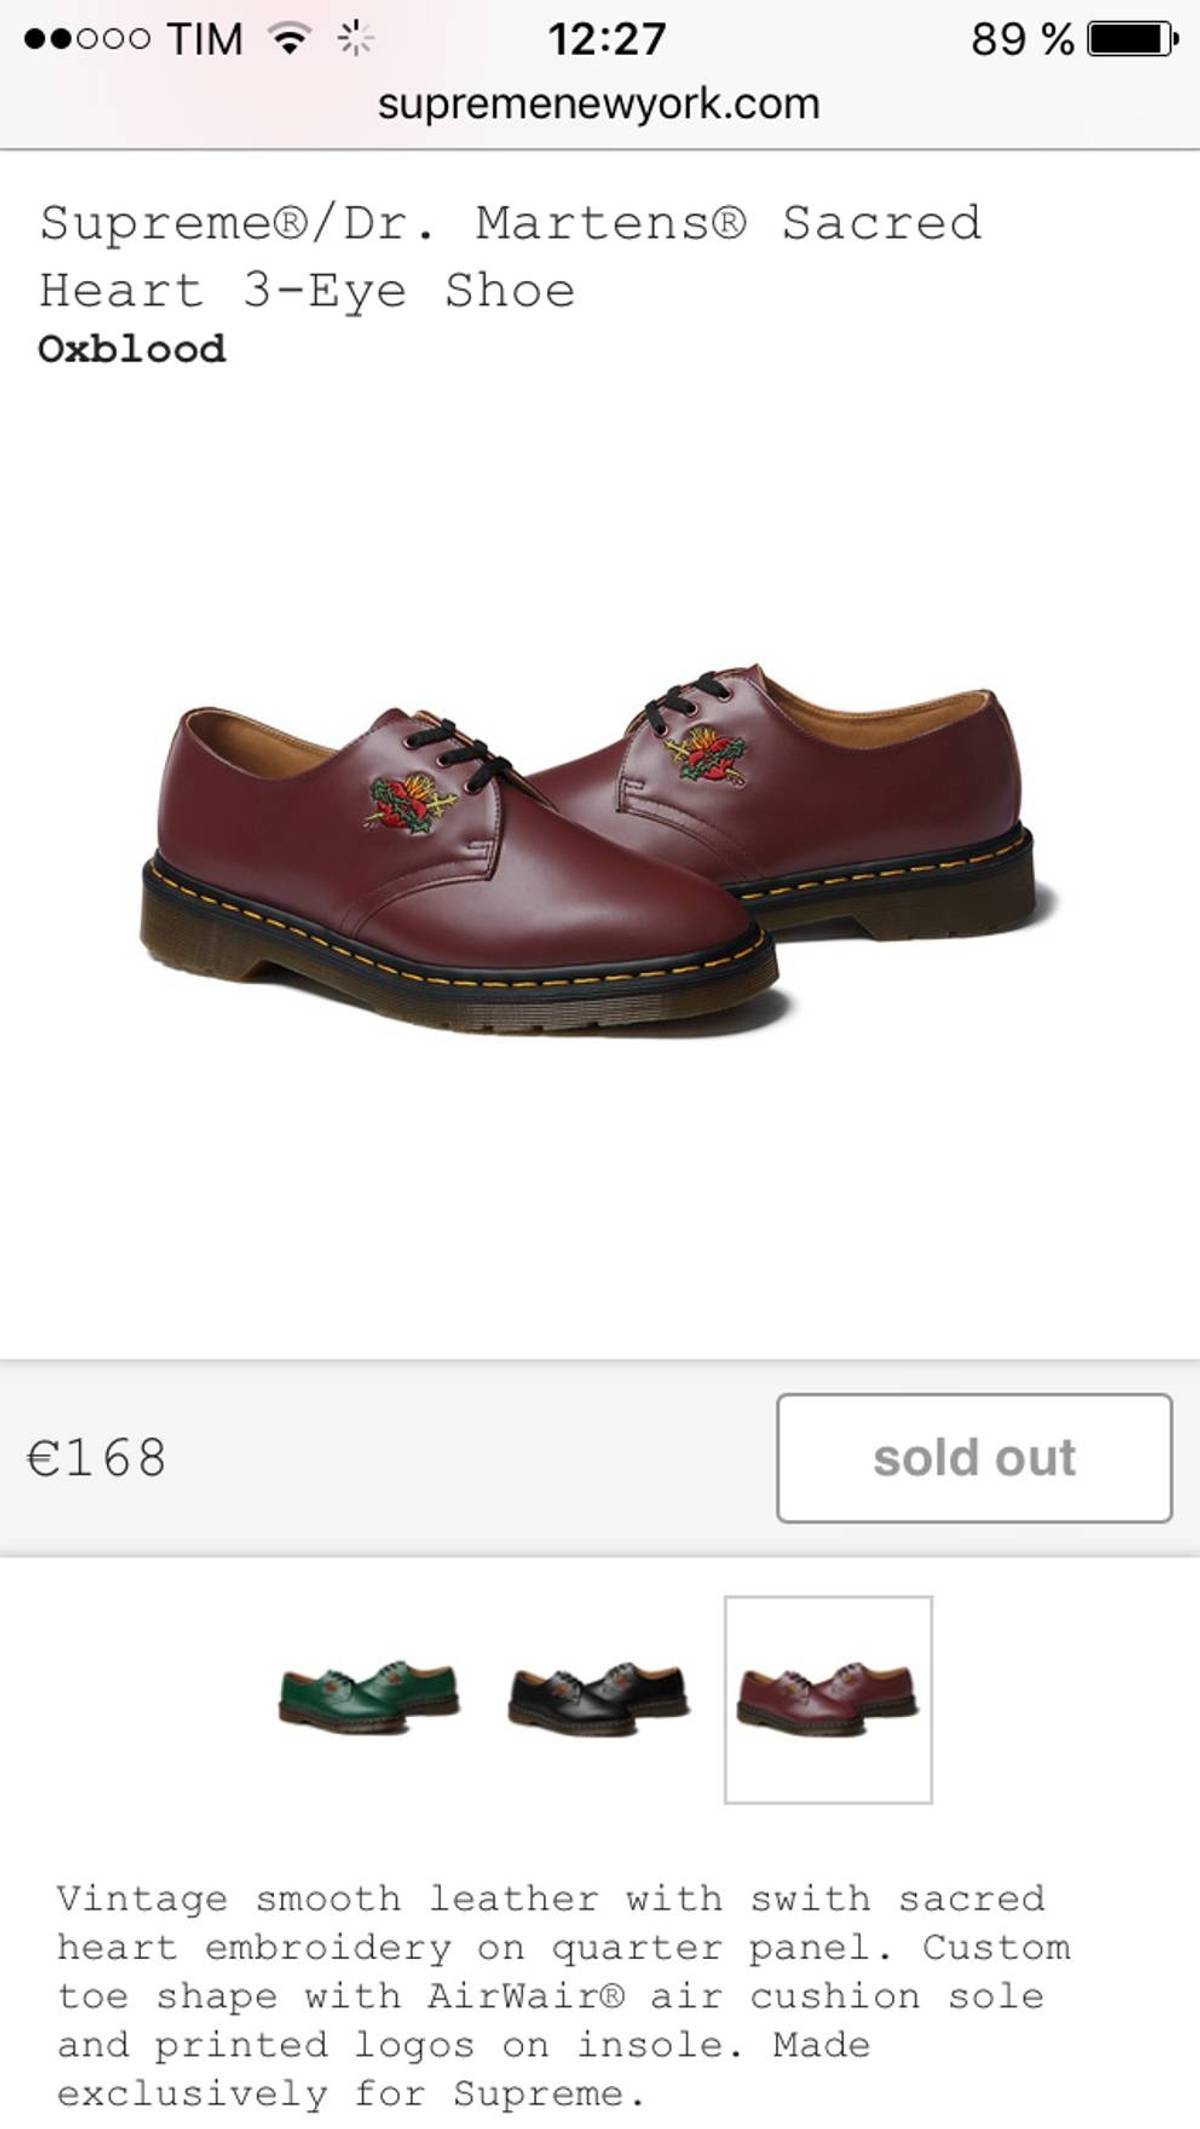 86e742ed0b10 Supreme Supreme x Dr. Martens Sacred Heart 3-Eye Shoe OxBlood Size 10.5 -  Casual Leather Shoes for Sale - Grailed